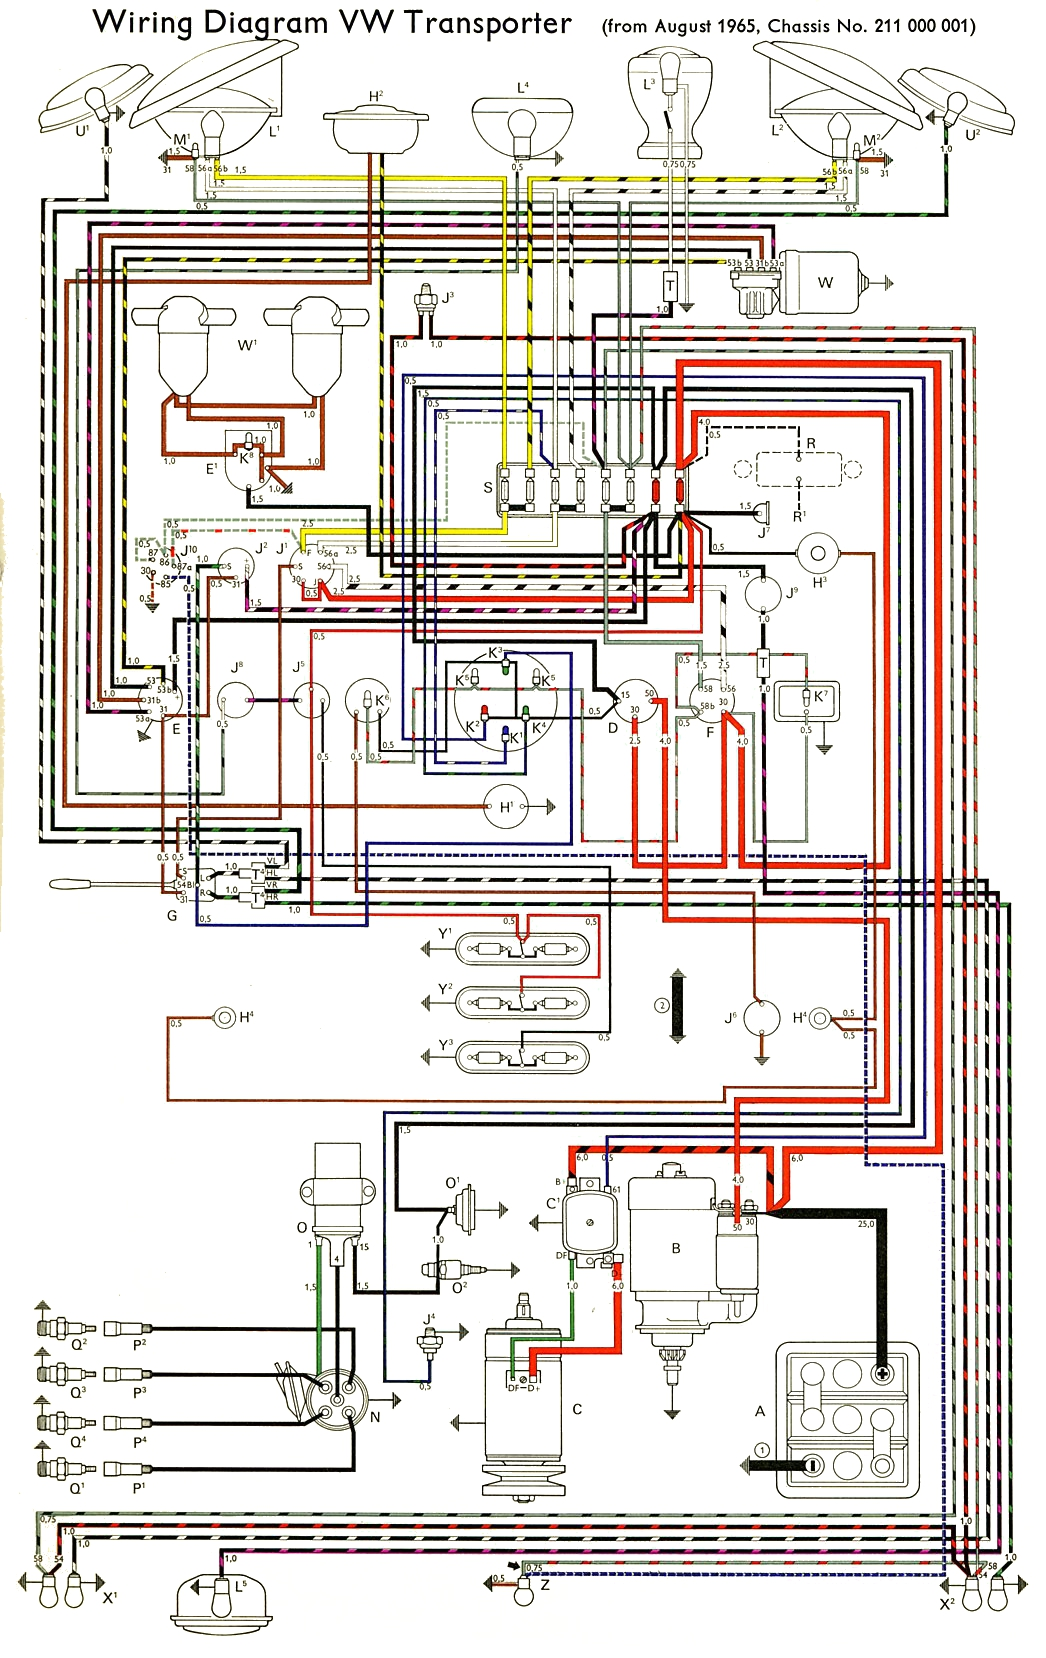 thomas wiring diagrams wiring diagram schemes 2014 thomas c2 school bus  bluebird bus wiring diagram wiring